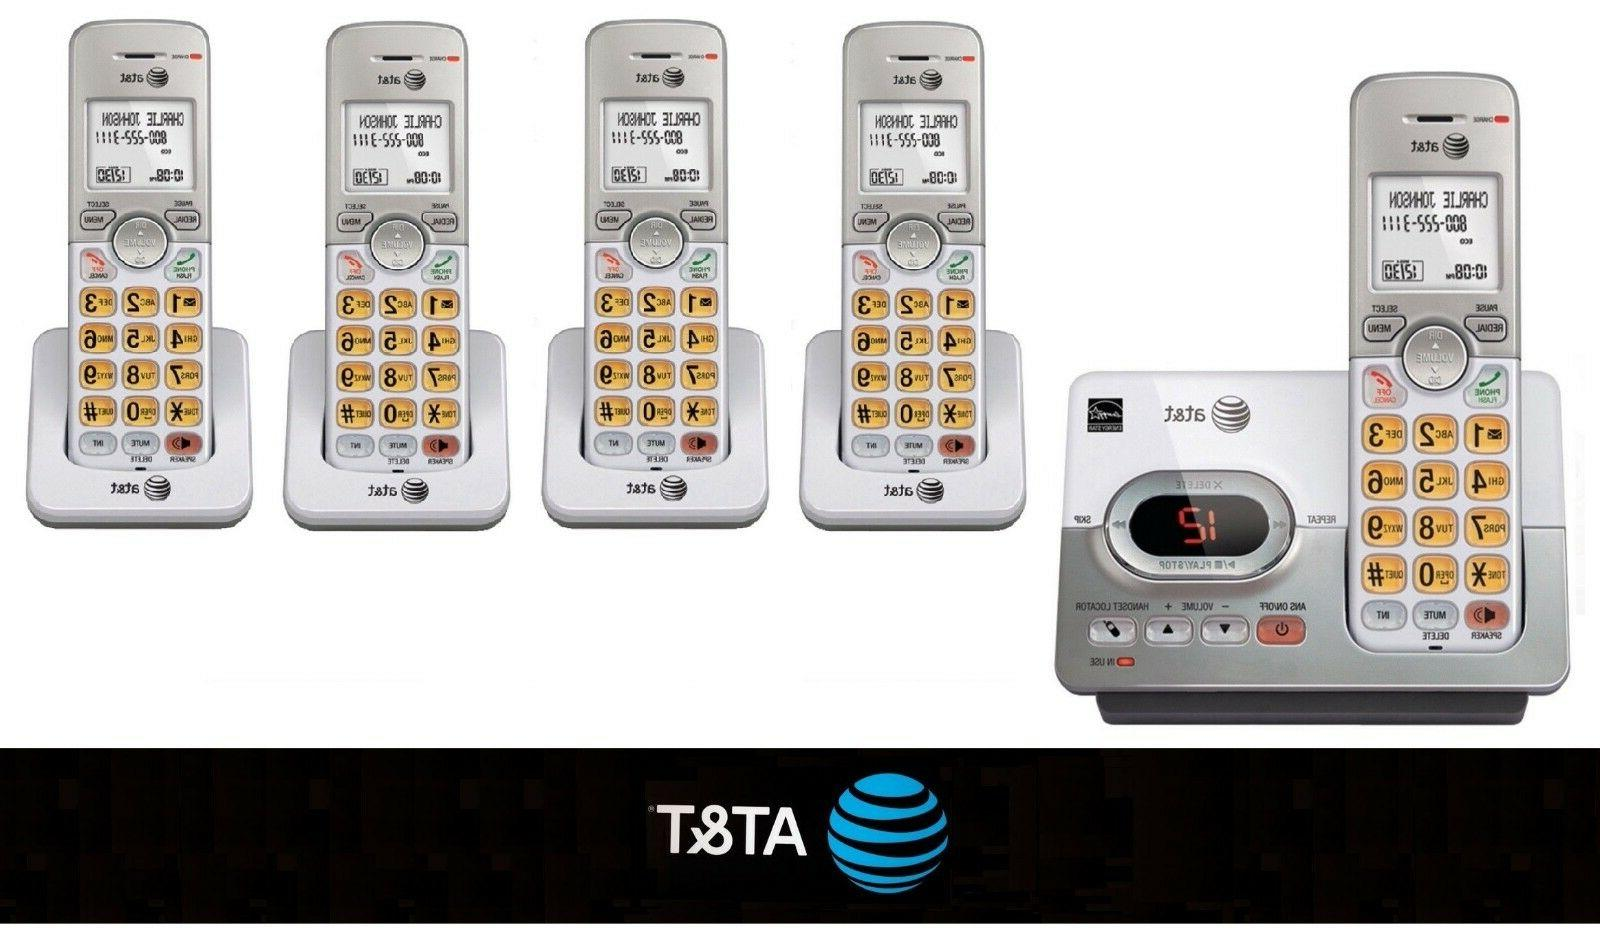 New AT&T 6.0 Cordless Wireless Home Phone